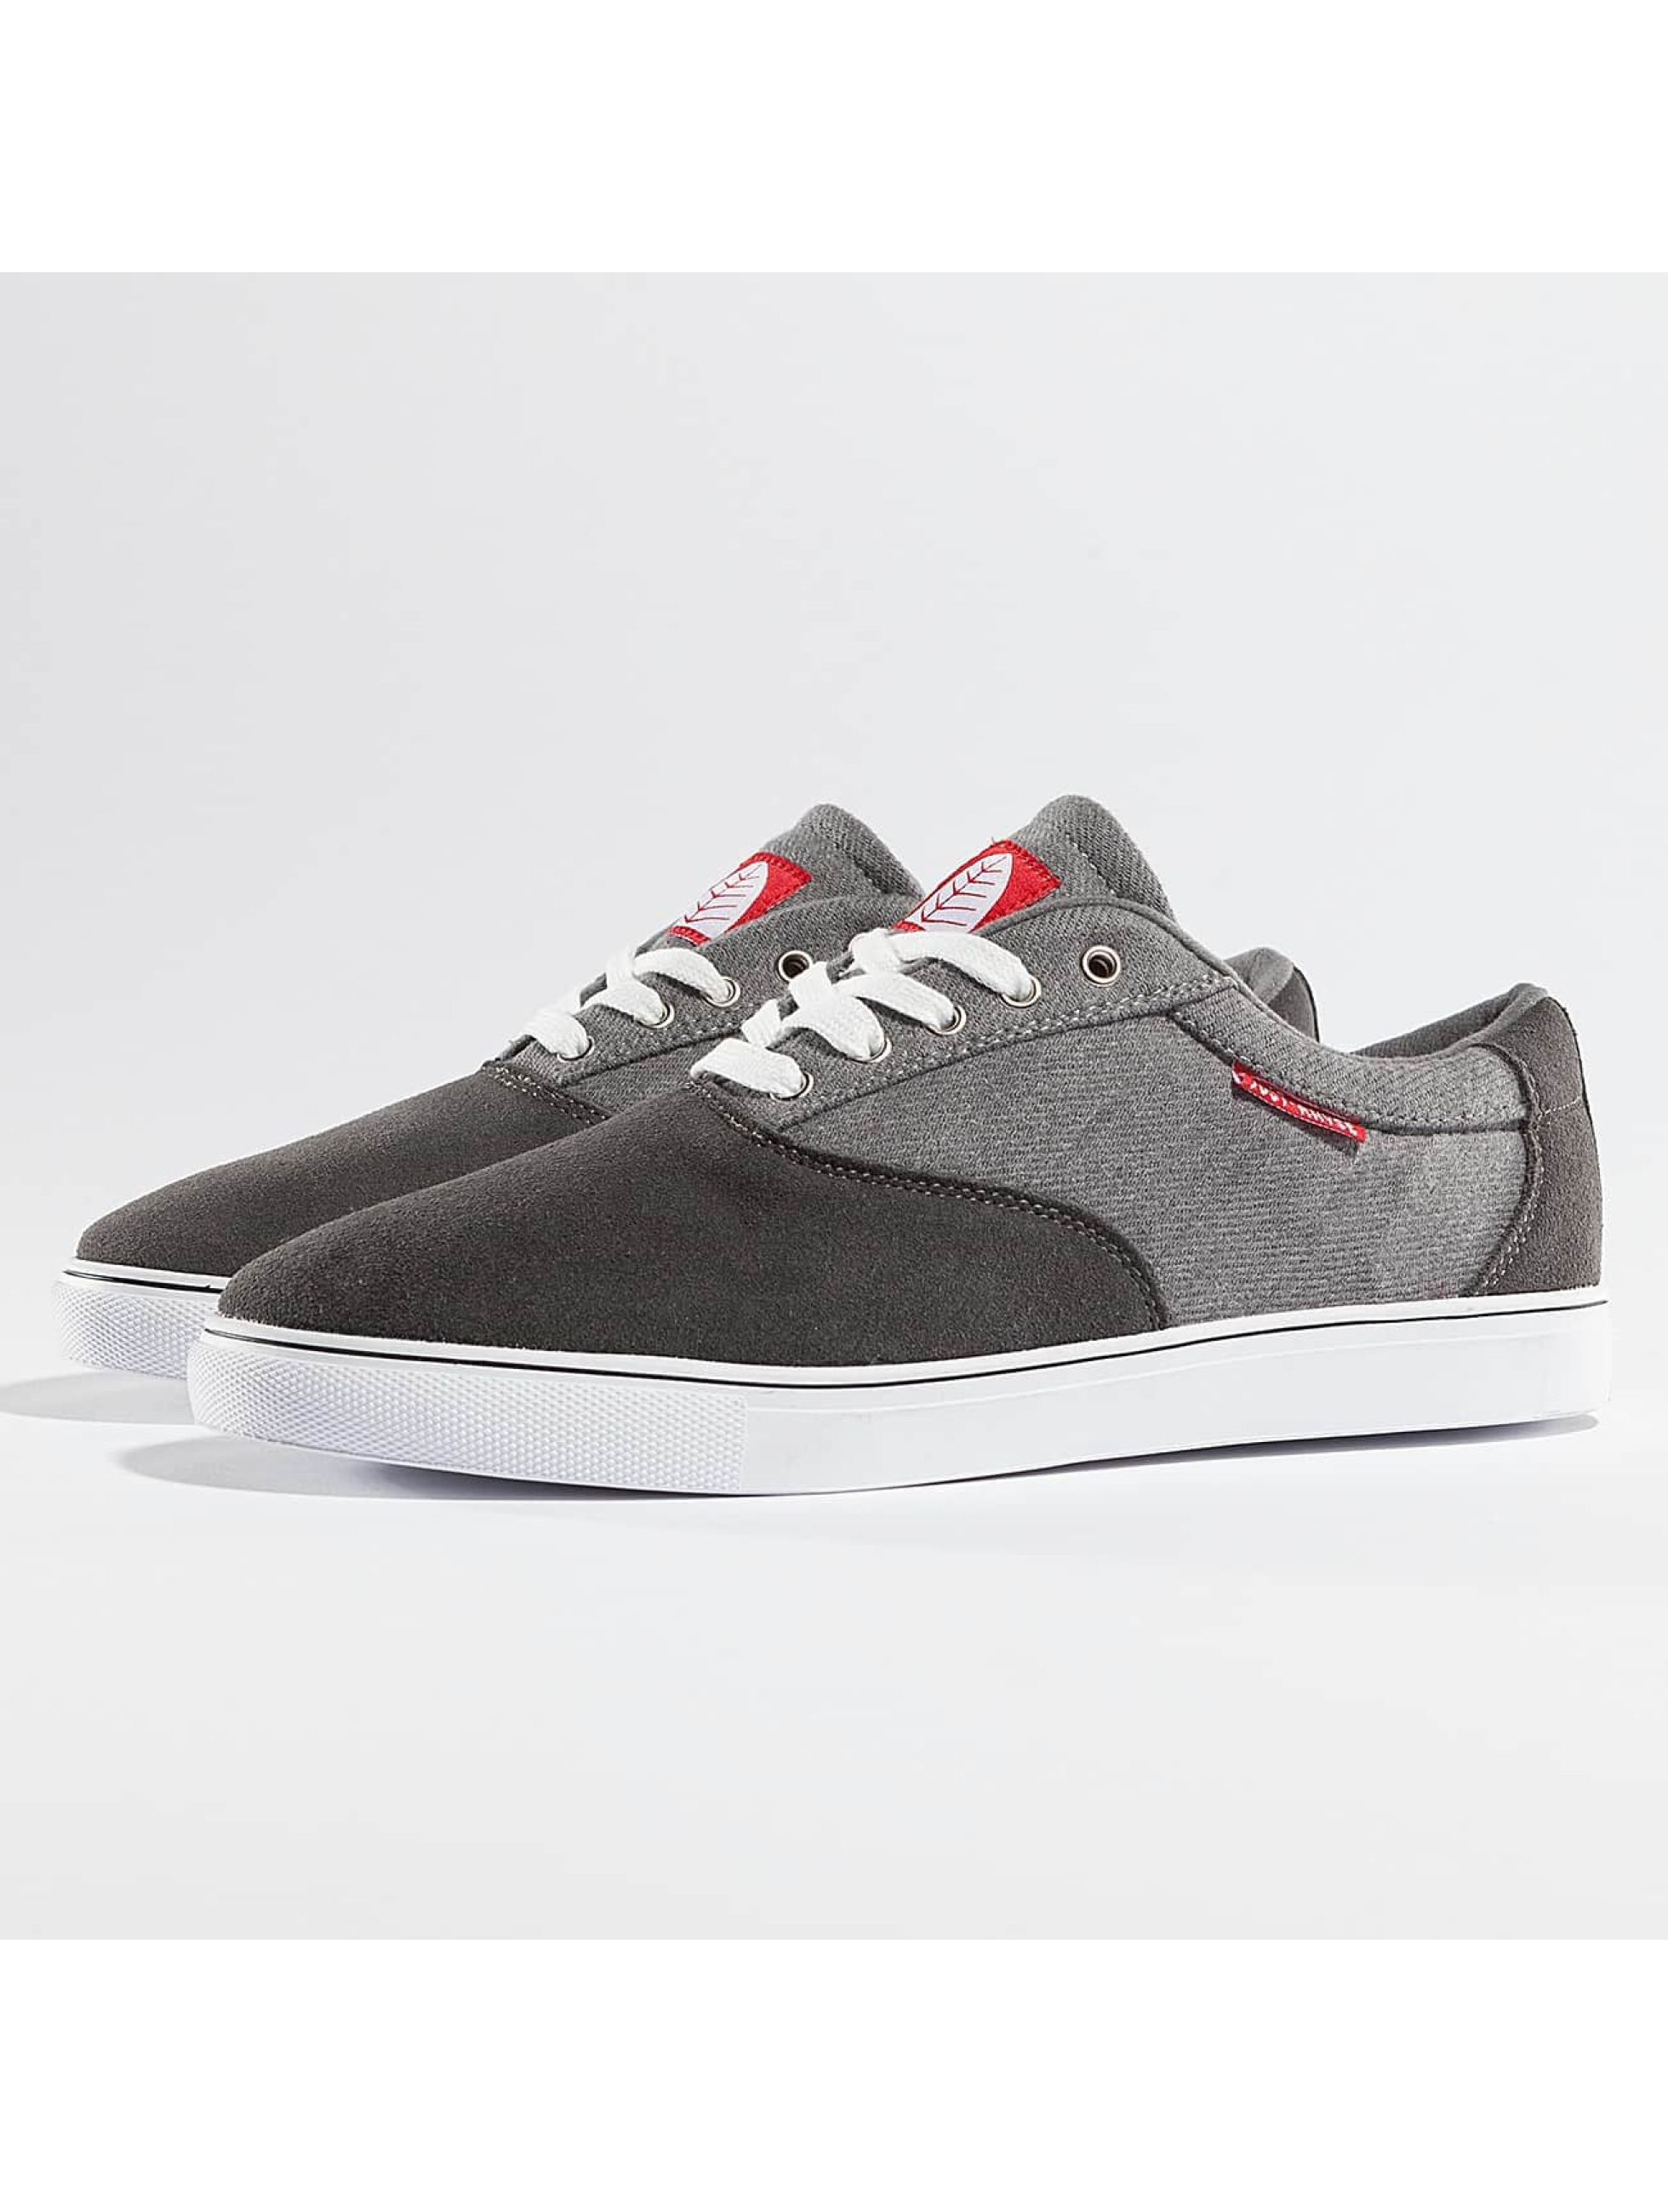 Just Rhyse / Sneakers Ozone in grey 44